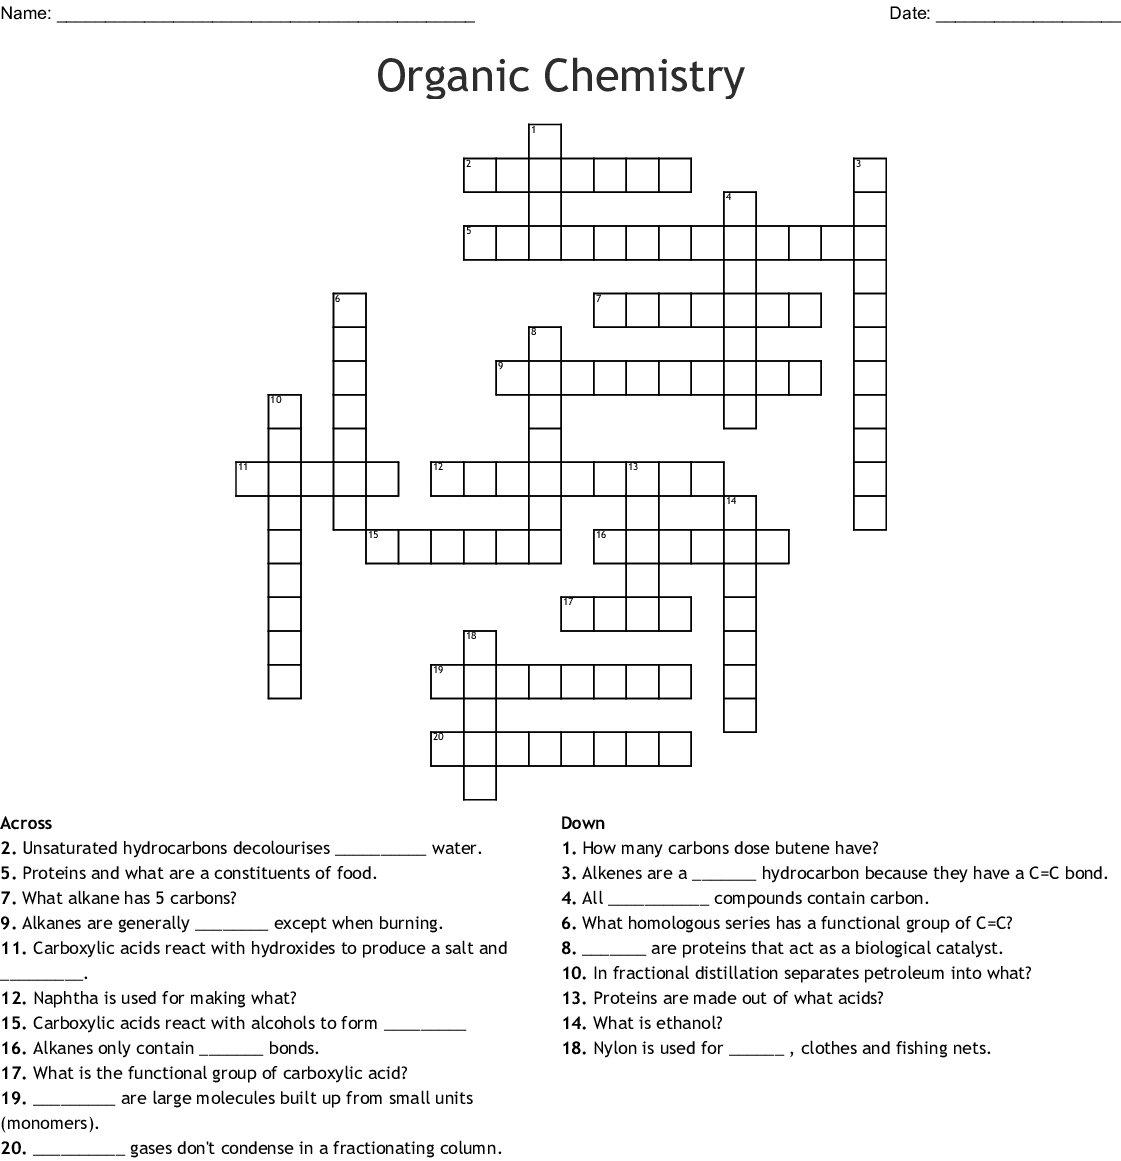 Organic Compounds Worksheet Biology Answers